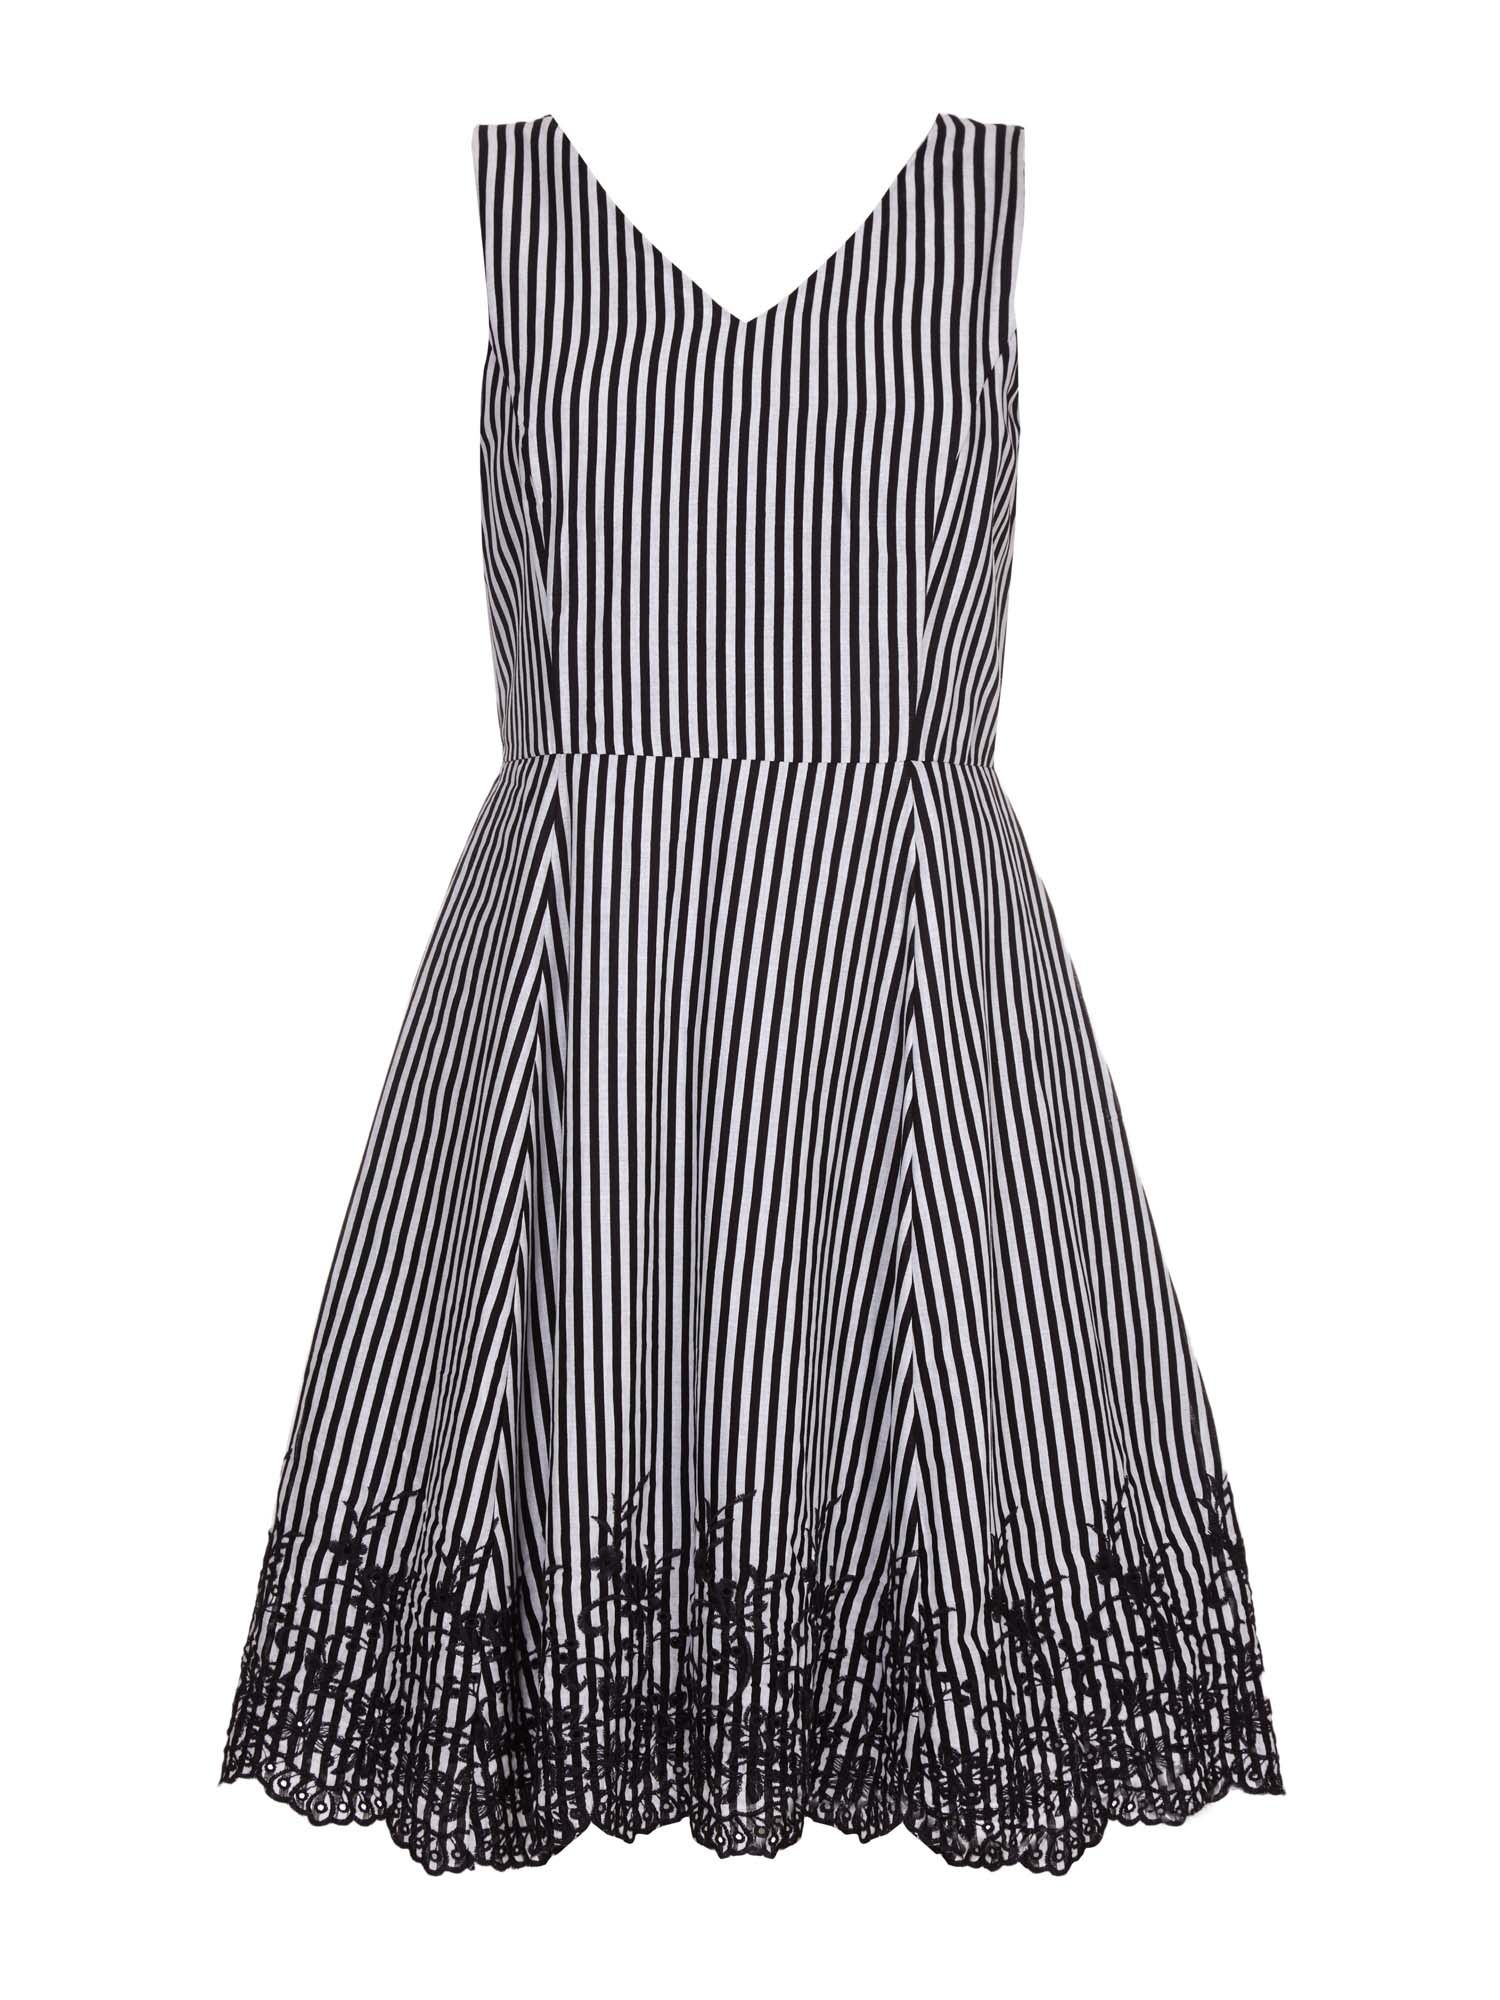 Yumi Yumi Stripe Embroidered Hemline Dress, Black